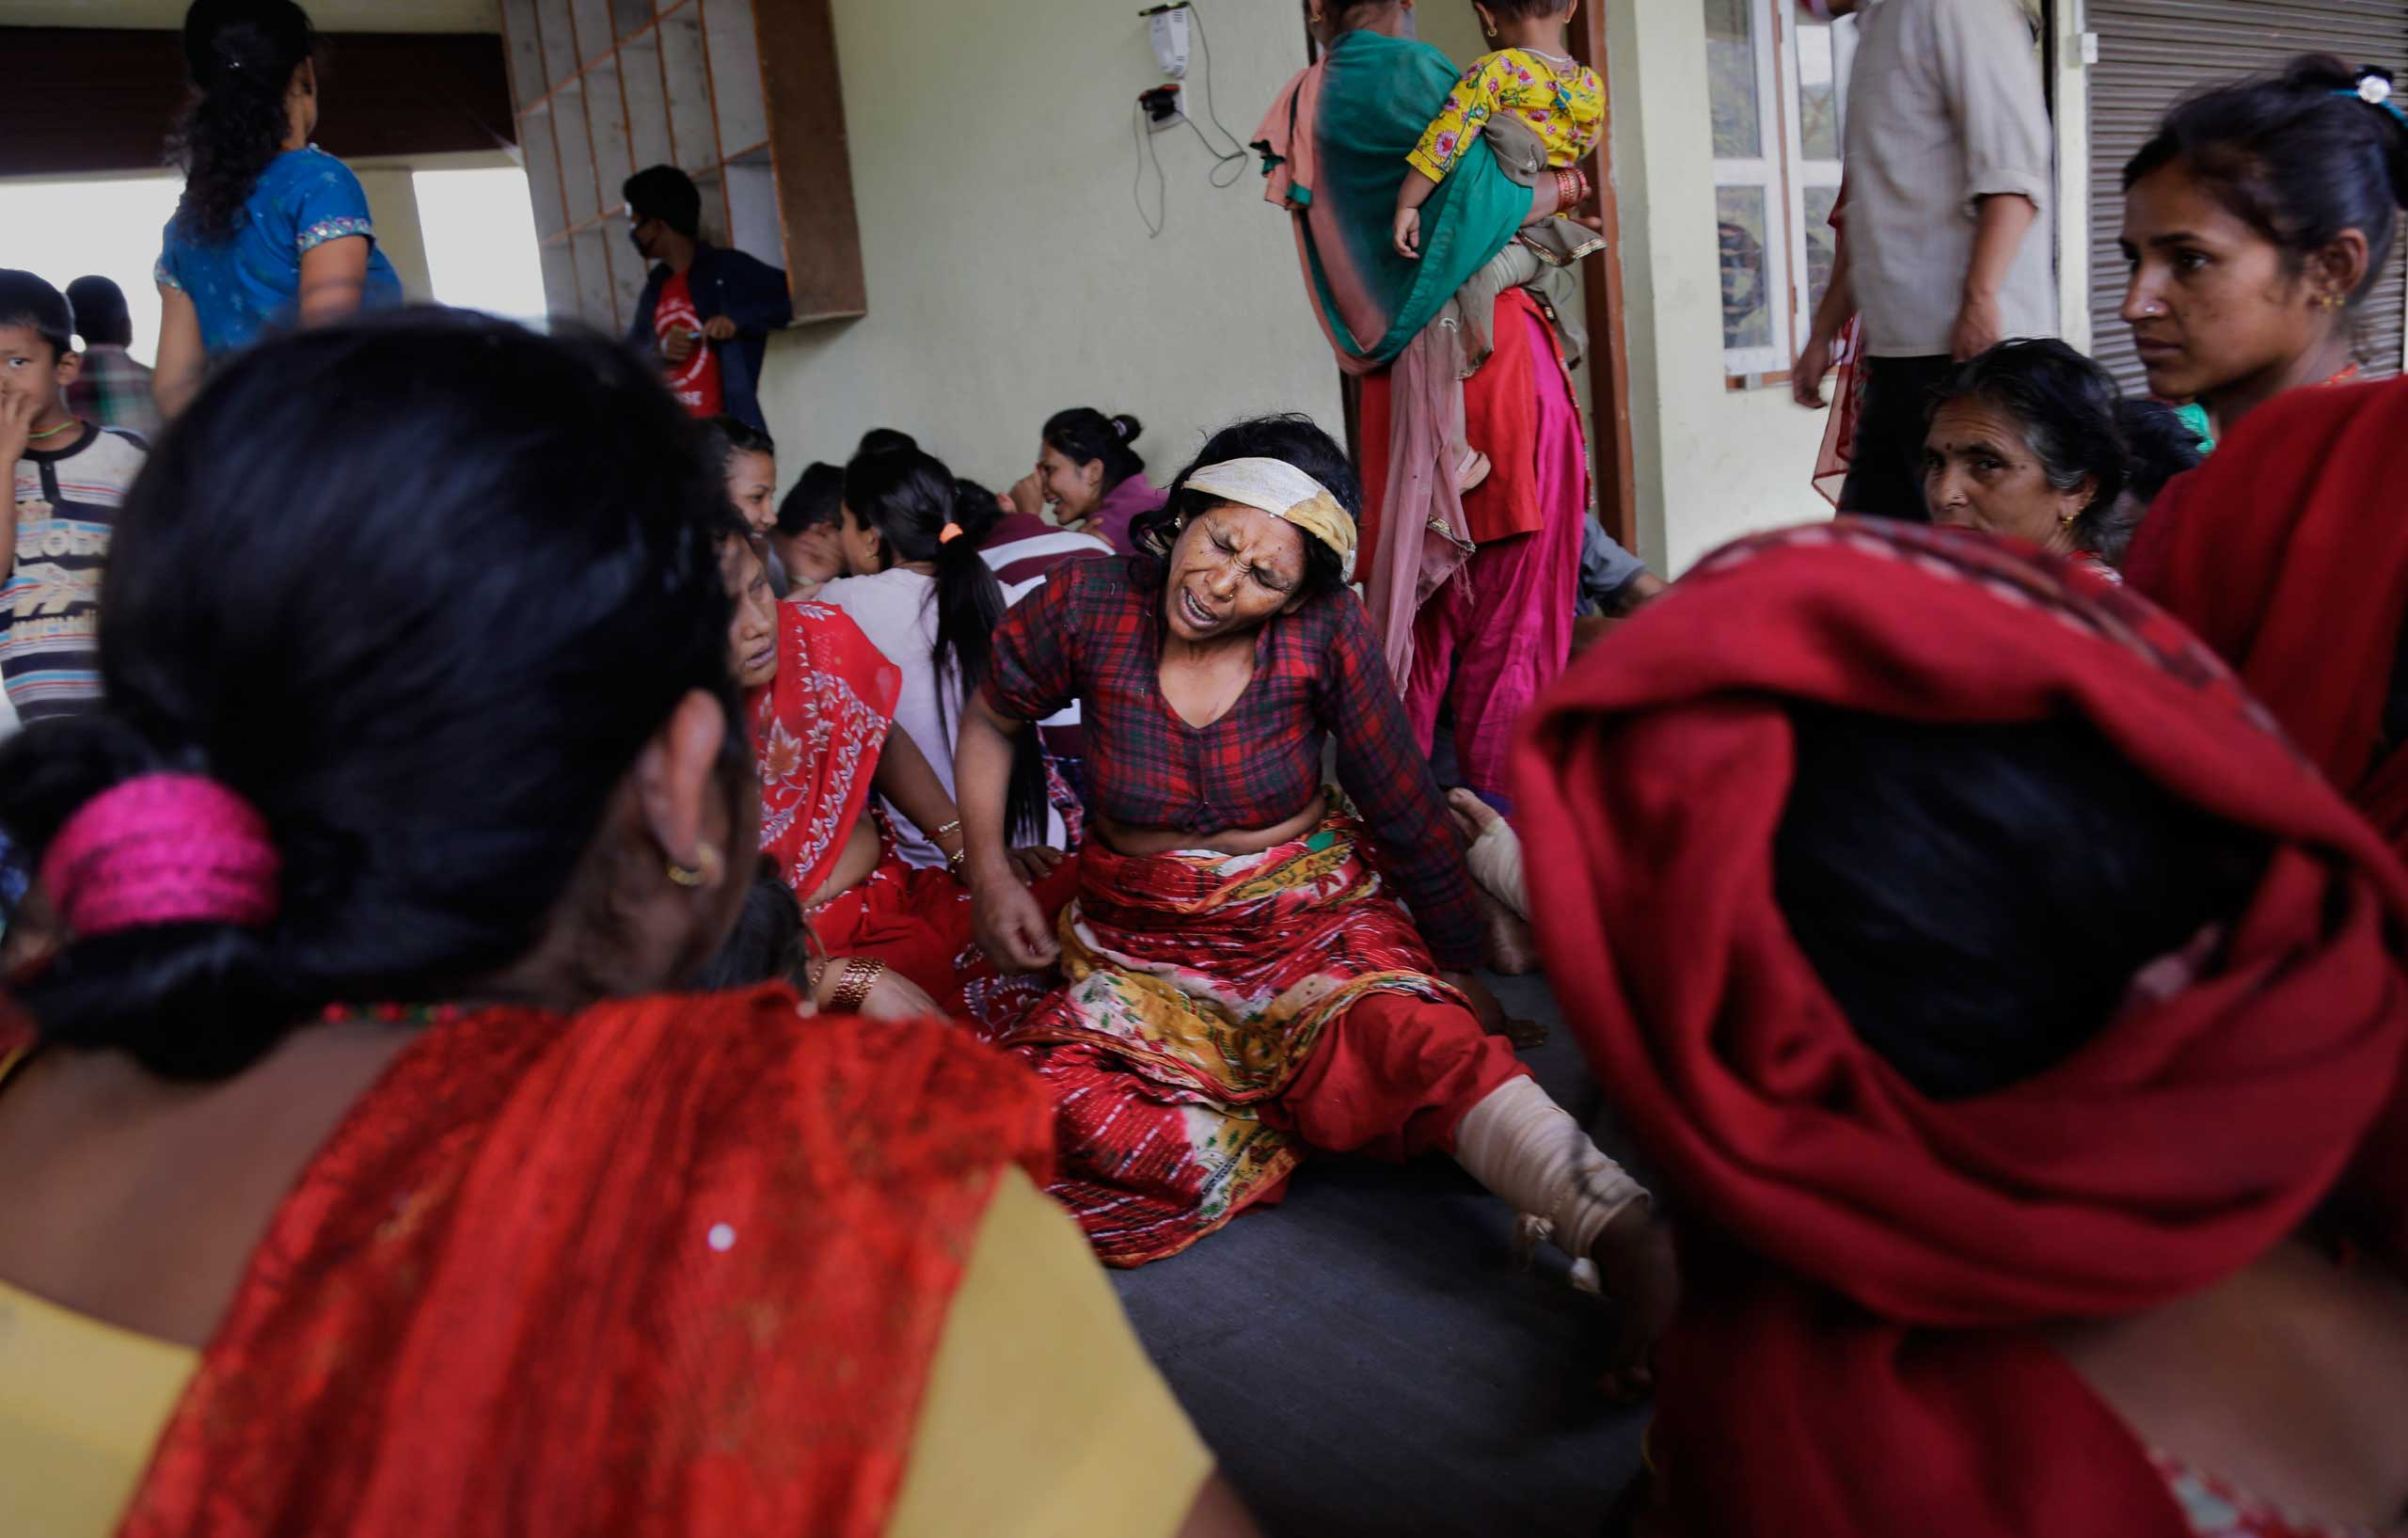 Nepalese villagers injured in Saturday's earthquake await evacuation at Trishuli Bazar in Nepal on April 27, 2015.